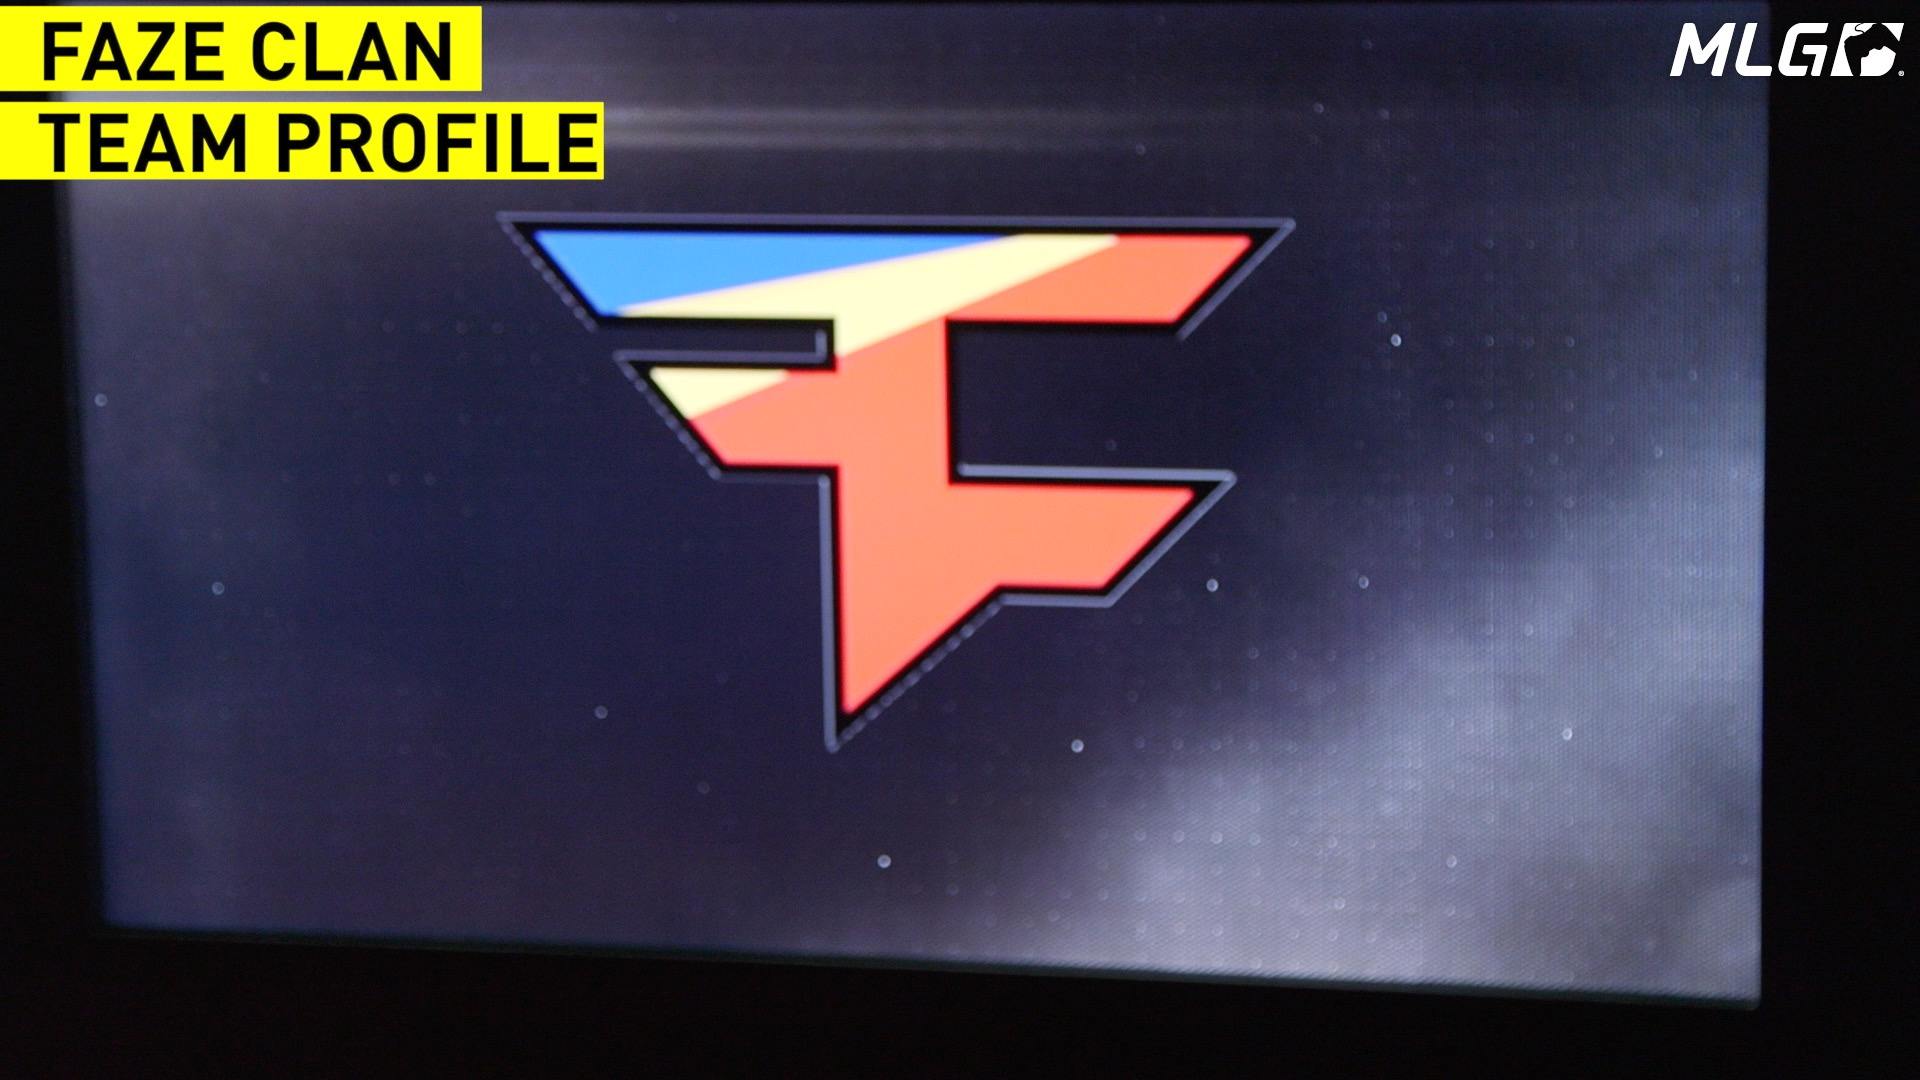 Mlg video faze clan team profile buycottarizona